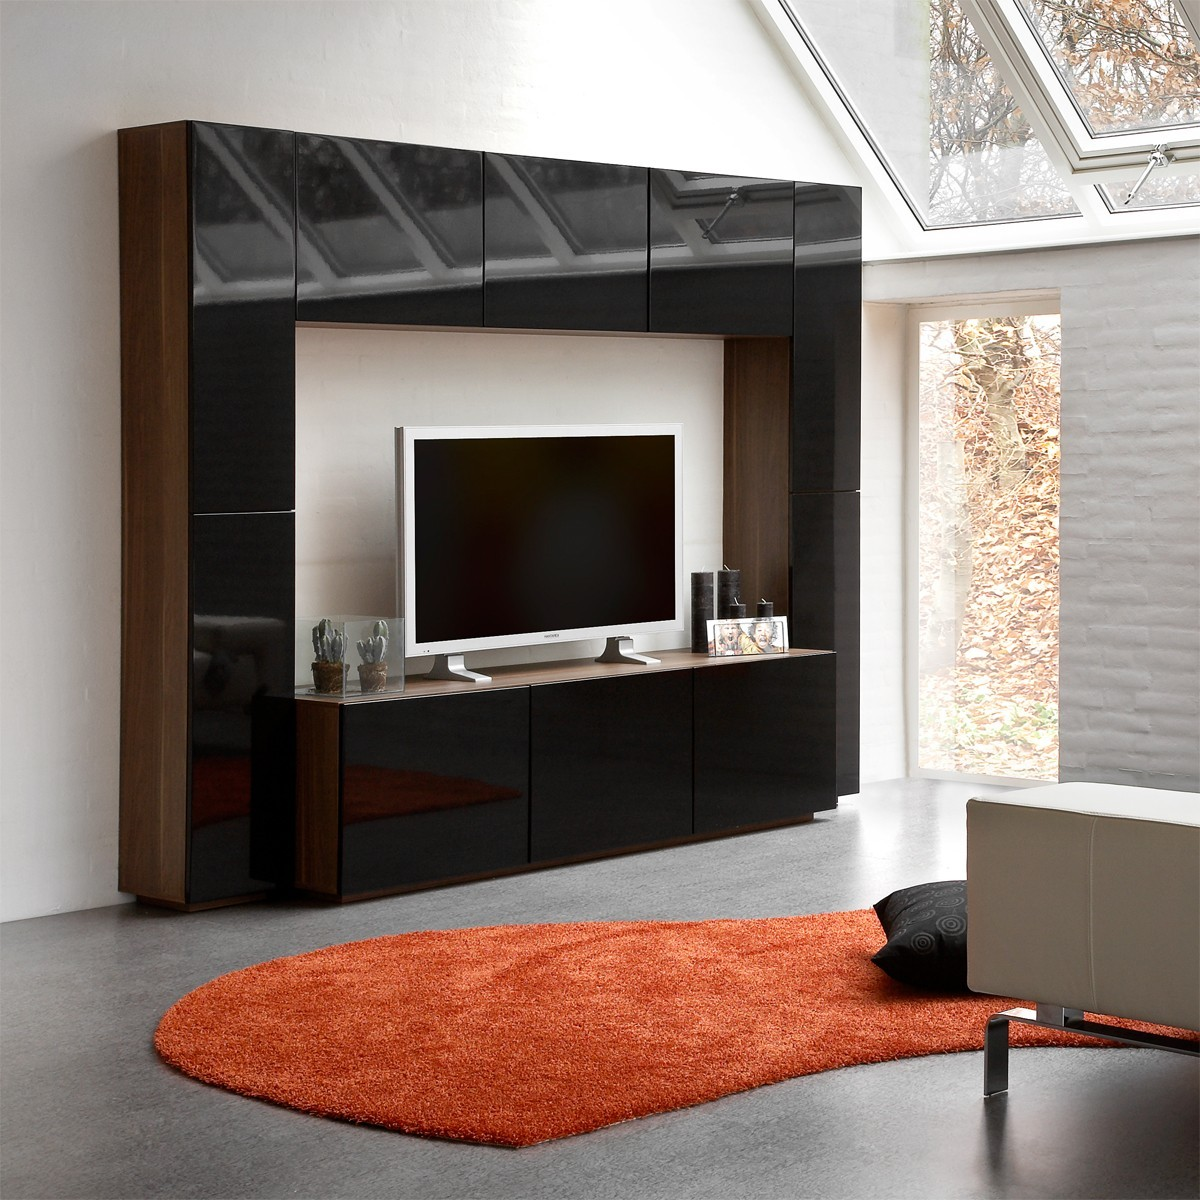 fernseher wand poco m bel design idee f r sie. Black Bedroom Furniture Sets. Home Design Ideas